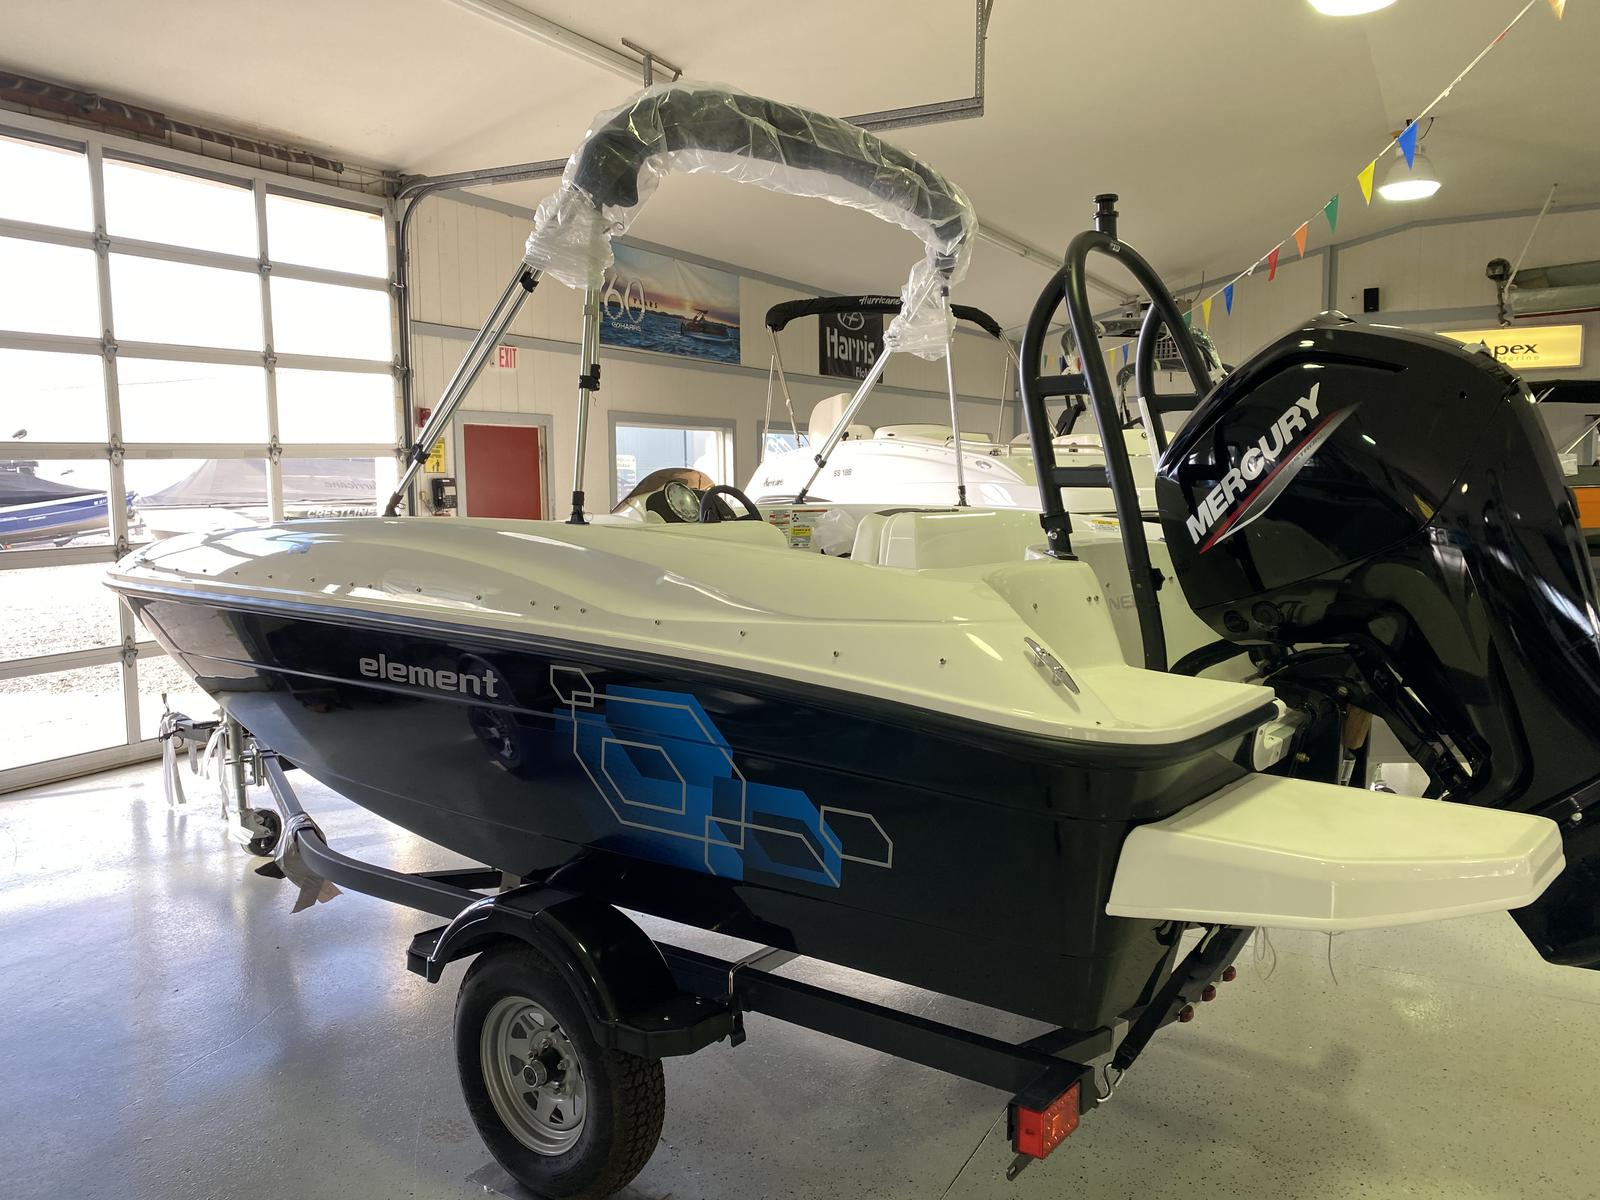 2021 Bayliner boat for sale, model of the boat is Element E16 & Image # 1 of 4